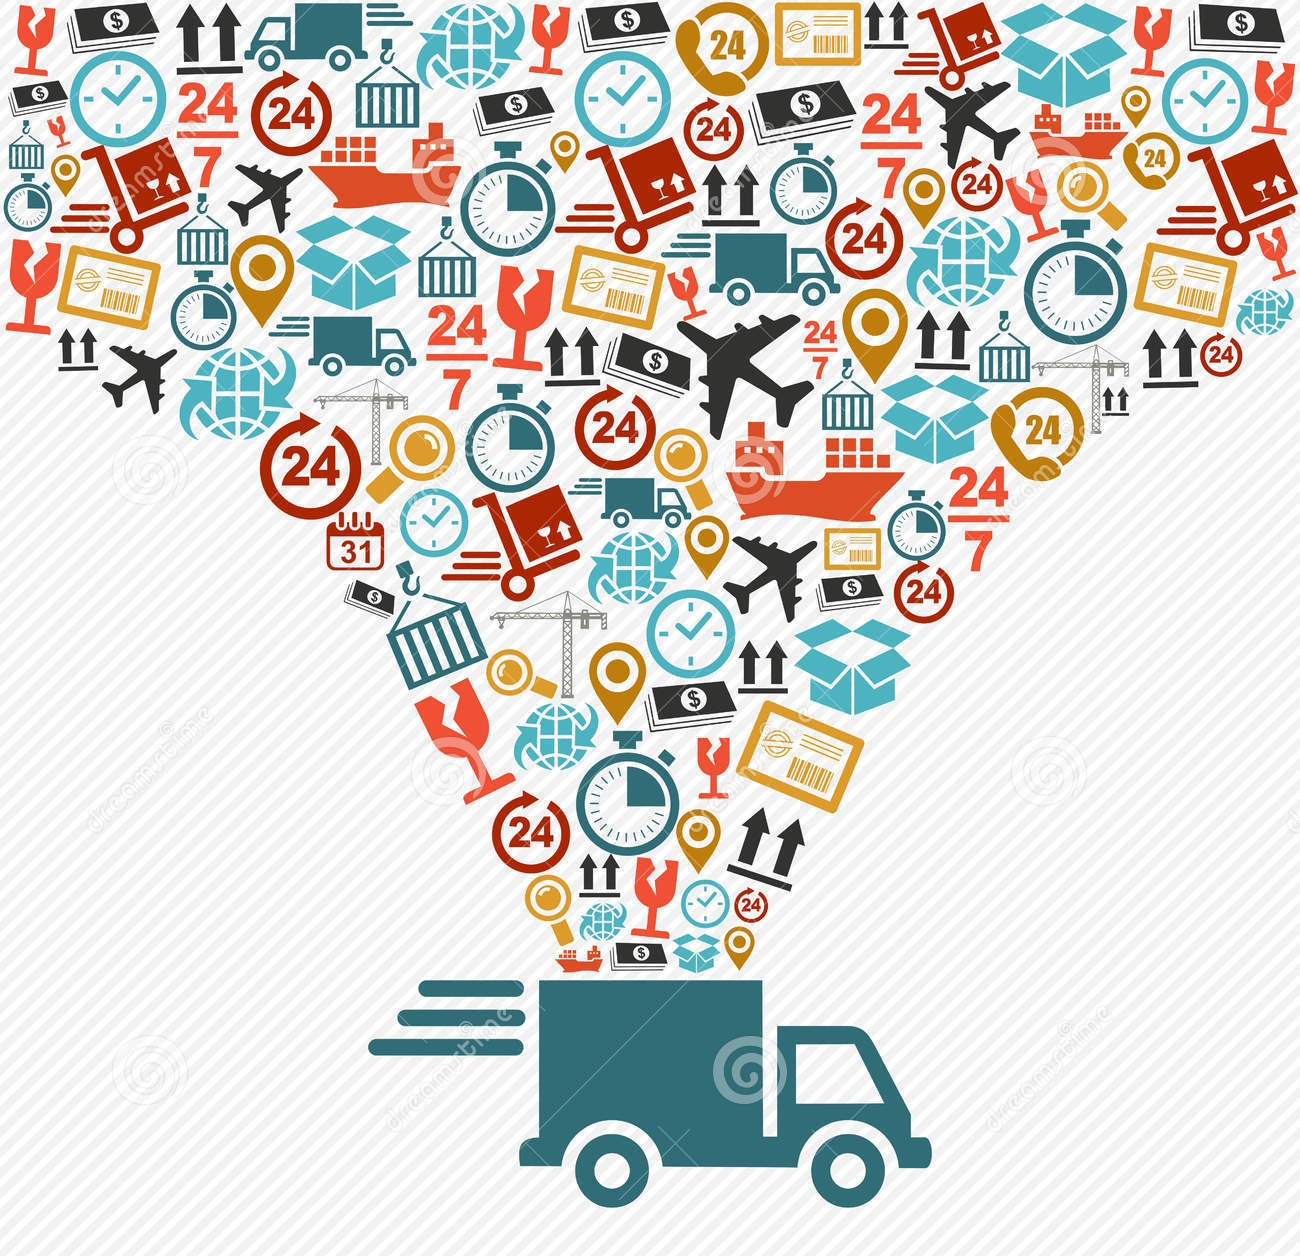 shipping-icons-set-fast-delivery-truck-concept-ill-logistics-speedy-splash-illustration-vector-file-layers-easy-33271571